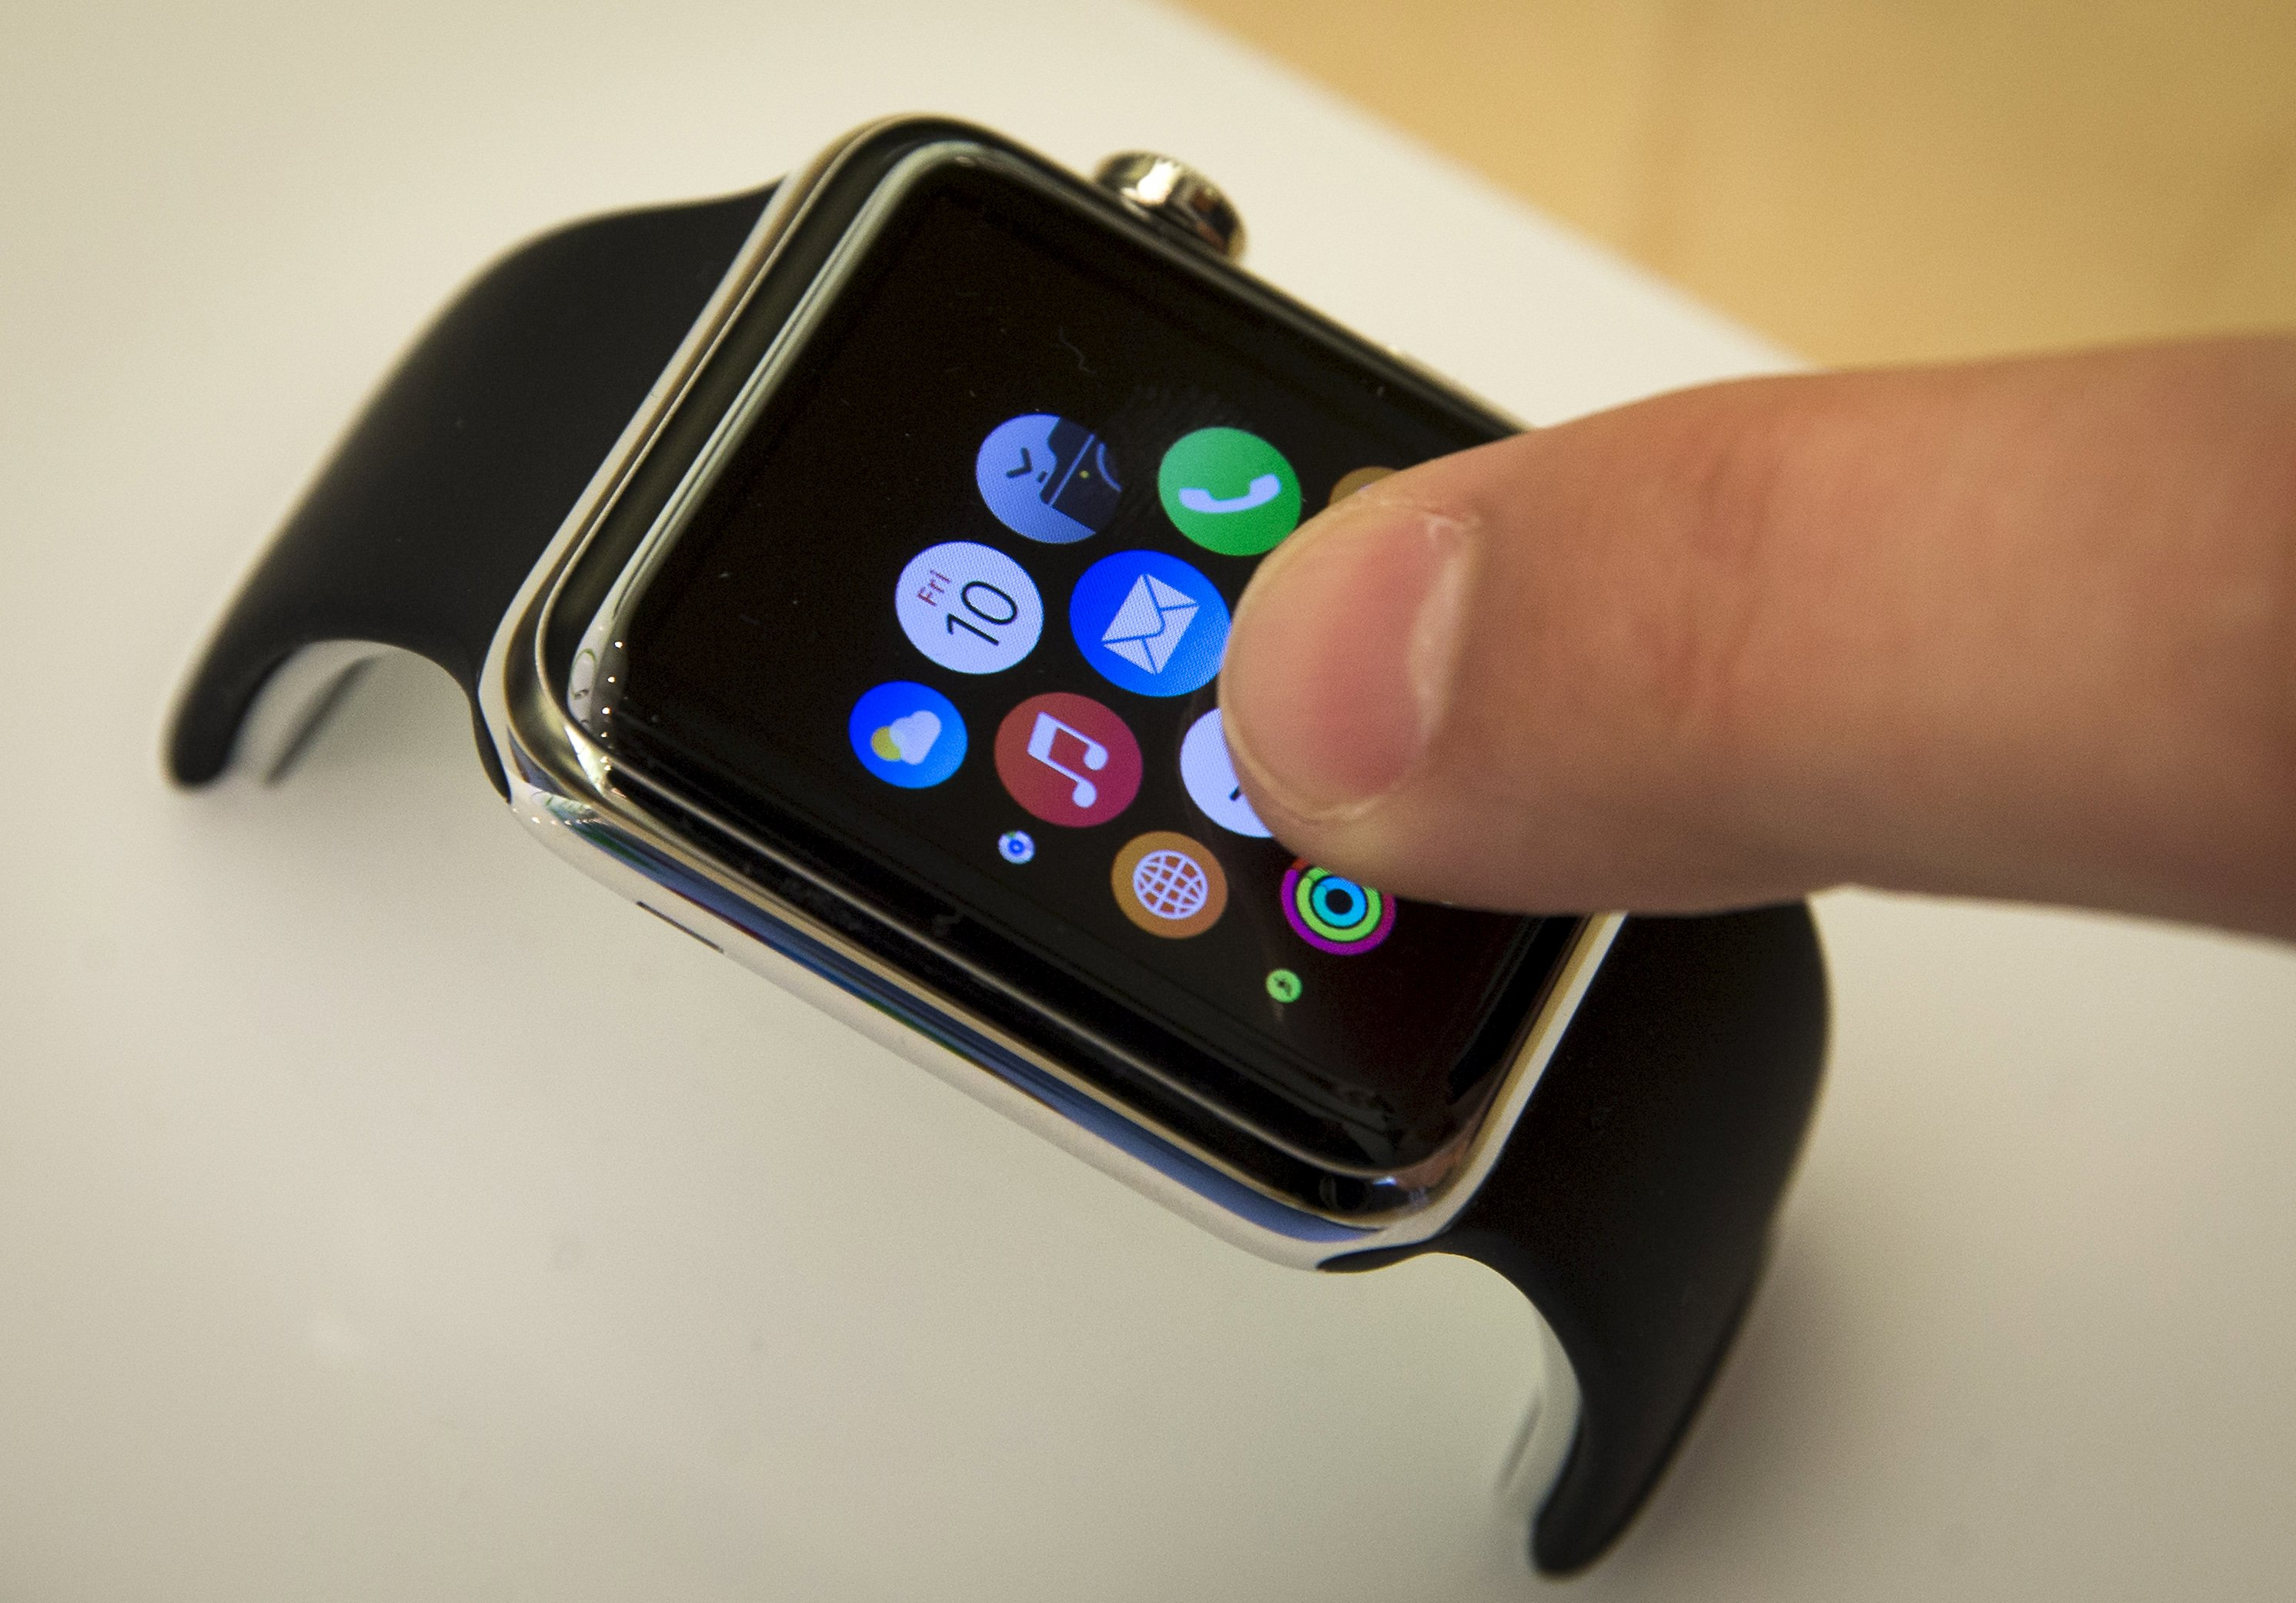 Apple tests smartwatch market with quiet debut of Cook's first product